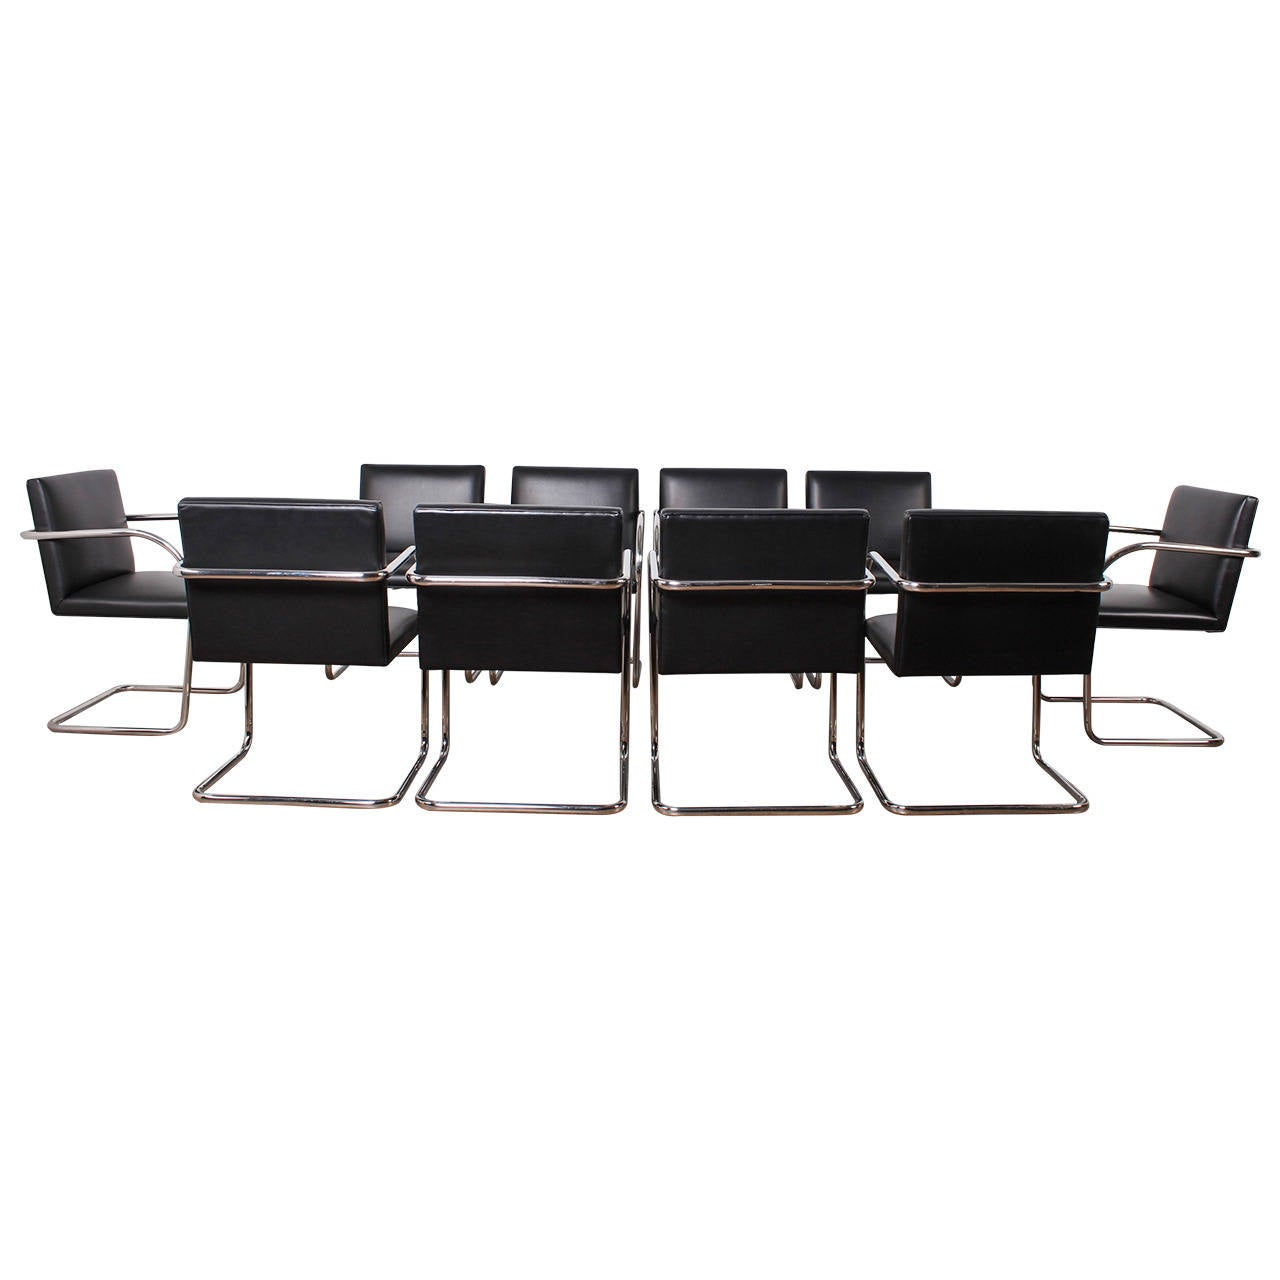 Brno chairs by mies van der rohe for knoll at 1stdibs for Van der rohe furniture